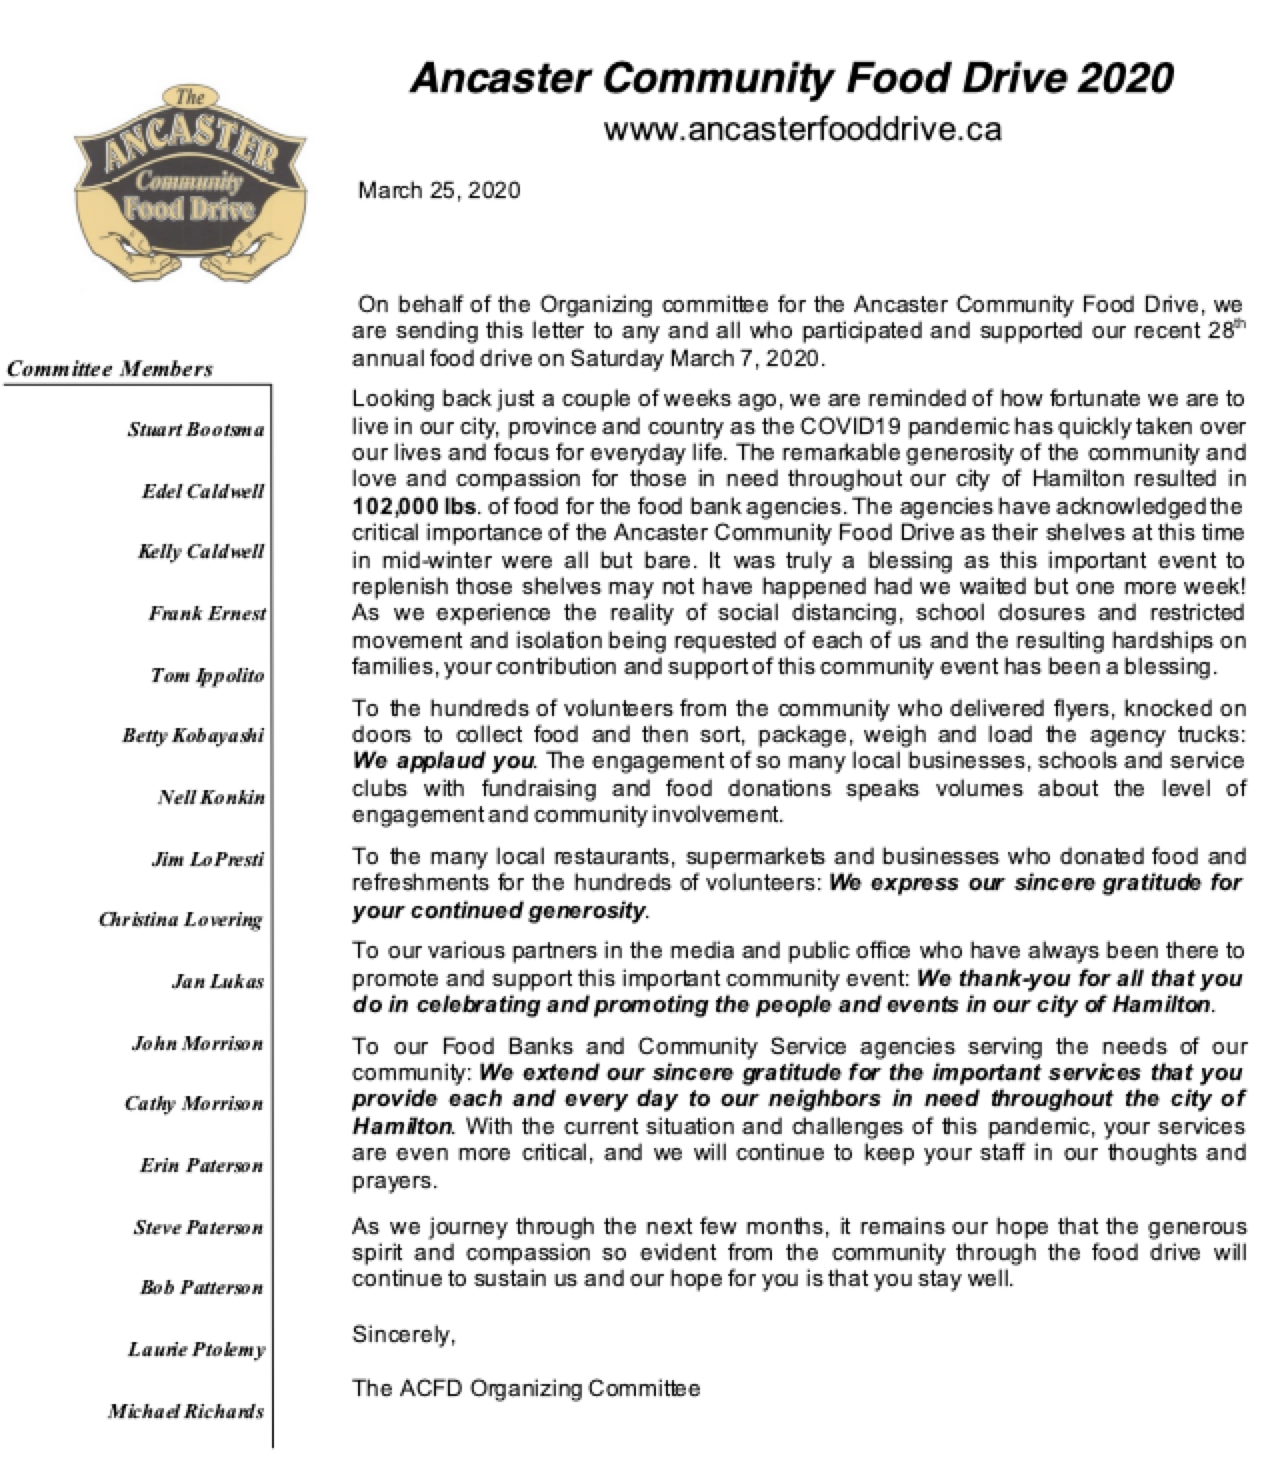 On behalf of the Organizing committee for the Ancaster Community Food Drive, we are sending this letter to any and all who participated and supported our recent 28th annual food drive on Saturday March 7, 2020.   Looking back just a couple of weeks ago, we are reminded of how fortunate we are to live in our city, province and country as the COVID19 pandemic has quickly taken over our lives and focus for everyday life. The remarkable generosity of the community and love and compassion for those in need throughout our city of Hamilton resulted in 102,000 lbs. of food for the food bank agencies. The agencies have acknowledged the critical importance of the Ancaster Community Food Drive as their shelves at this time in mid-winter were all but bare. It was truly a blessing as this important event to replenish those shelves may not have happened had we waited but one more week! As we experience the reality of social distancing, school closures and restricted movement and isolation being requested of each of us and the resulting hardships on families, your contribution and support of this community event has been a blessing.  To the hundreds of volunteers from the community who delivered flyers, knocked on doors to collect food and then sort, package, weigh and load the agency trucks:            We applaud you. The engagement of so many local businesses, schools and service clubs with fundraising and food donations speaks volumes about the level of engagement and community involvement.   To the many local restaurants, supermarkets and businesses who donated food and refreshments for the hundreds of volunteers: We express our sincere gratitude for your continued generosity.   To our various partners in the media and public office who have always been there to promote and support this important community event: We thank-you for all that you do in celebrating and promoting the people and events in our city of Hamilton.   To our Food Banks and Community Service agencies servin